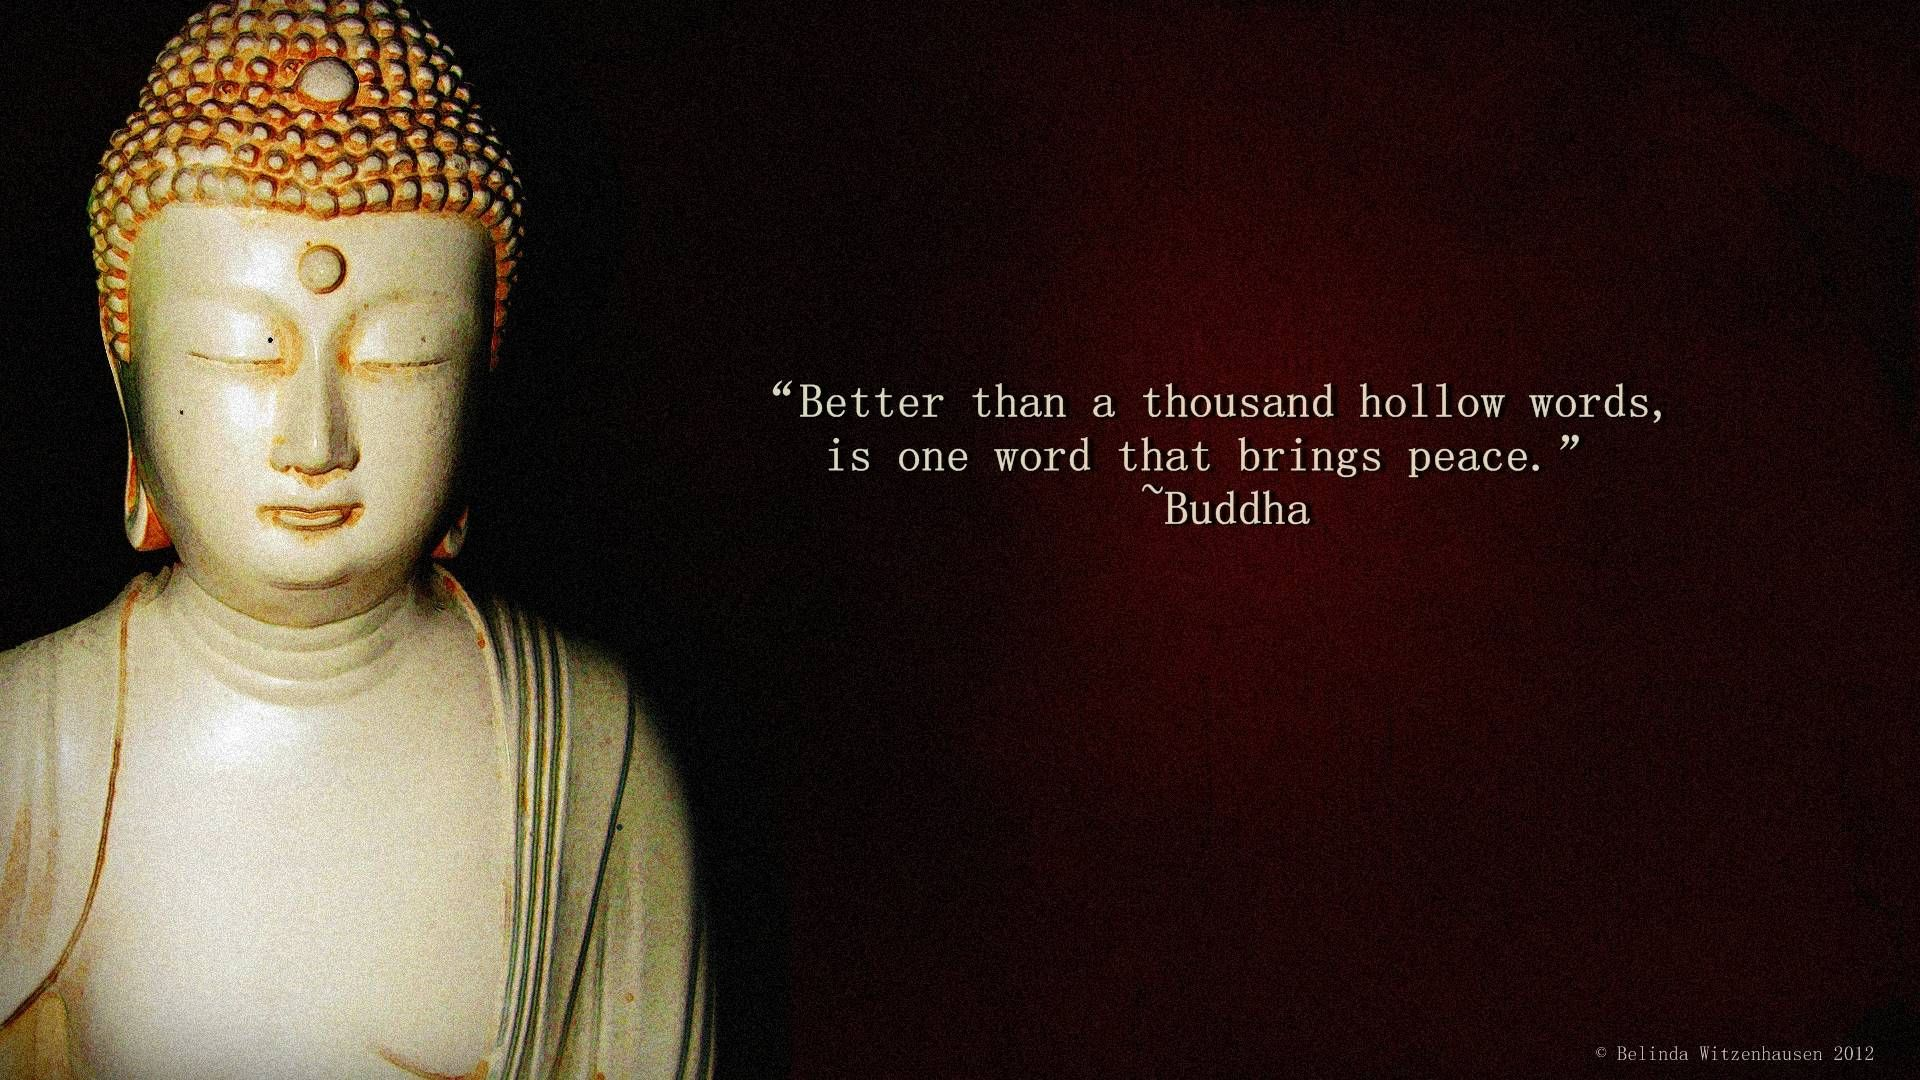 Famous Buddha Quotes Buddha Quotes Wallpaper  610727  Buddha Beliefs And Sayings